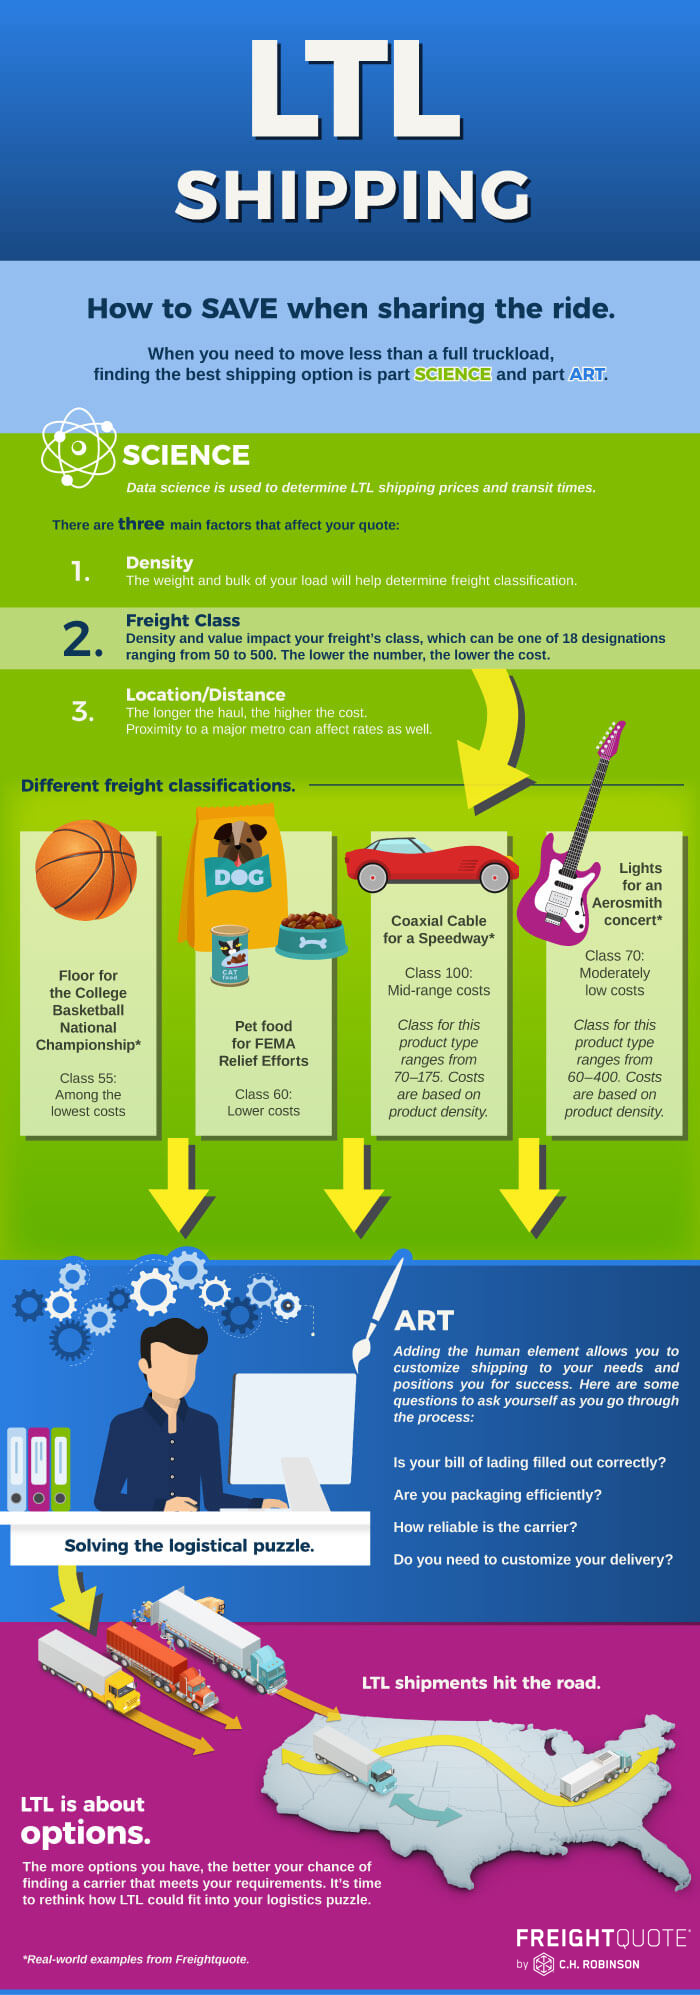 ltl shipping infographic